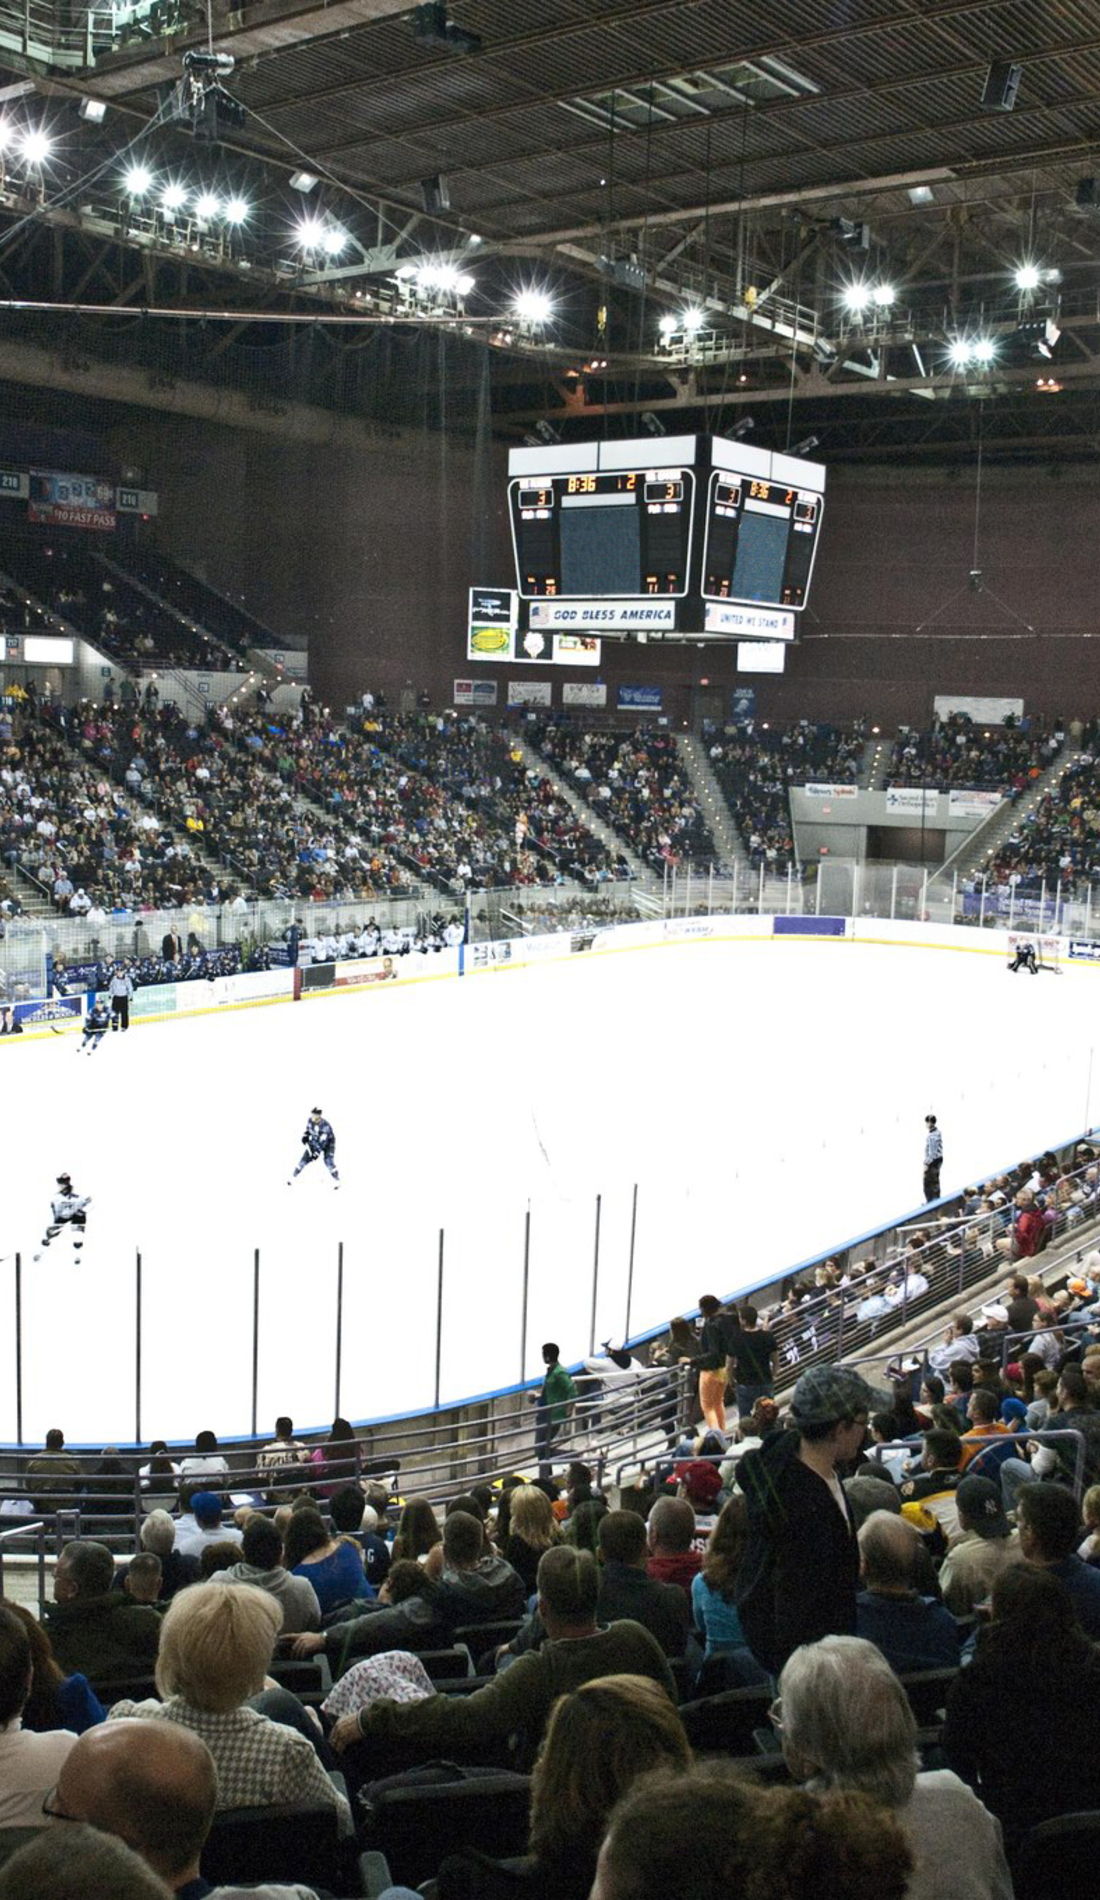 A Pensacola Ice Flyers live event